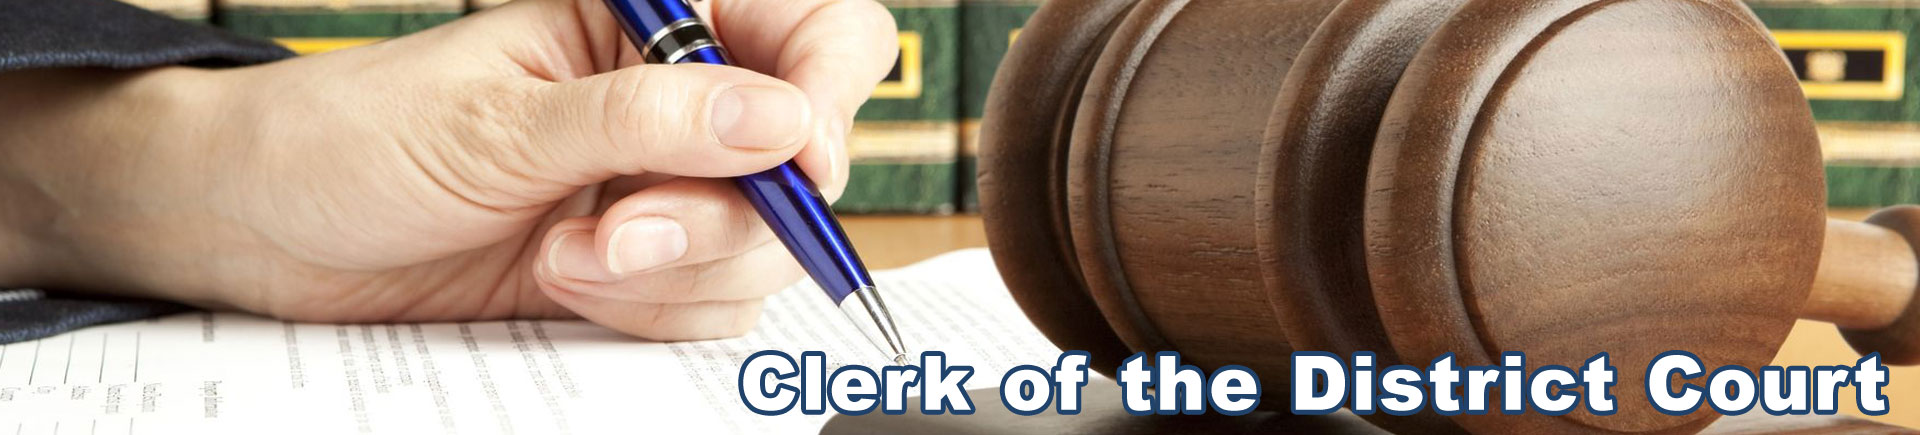 Lincoln County Clerk of the District Court